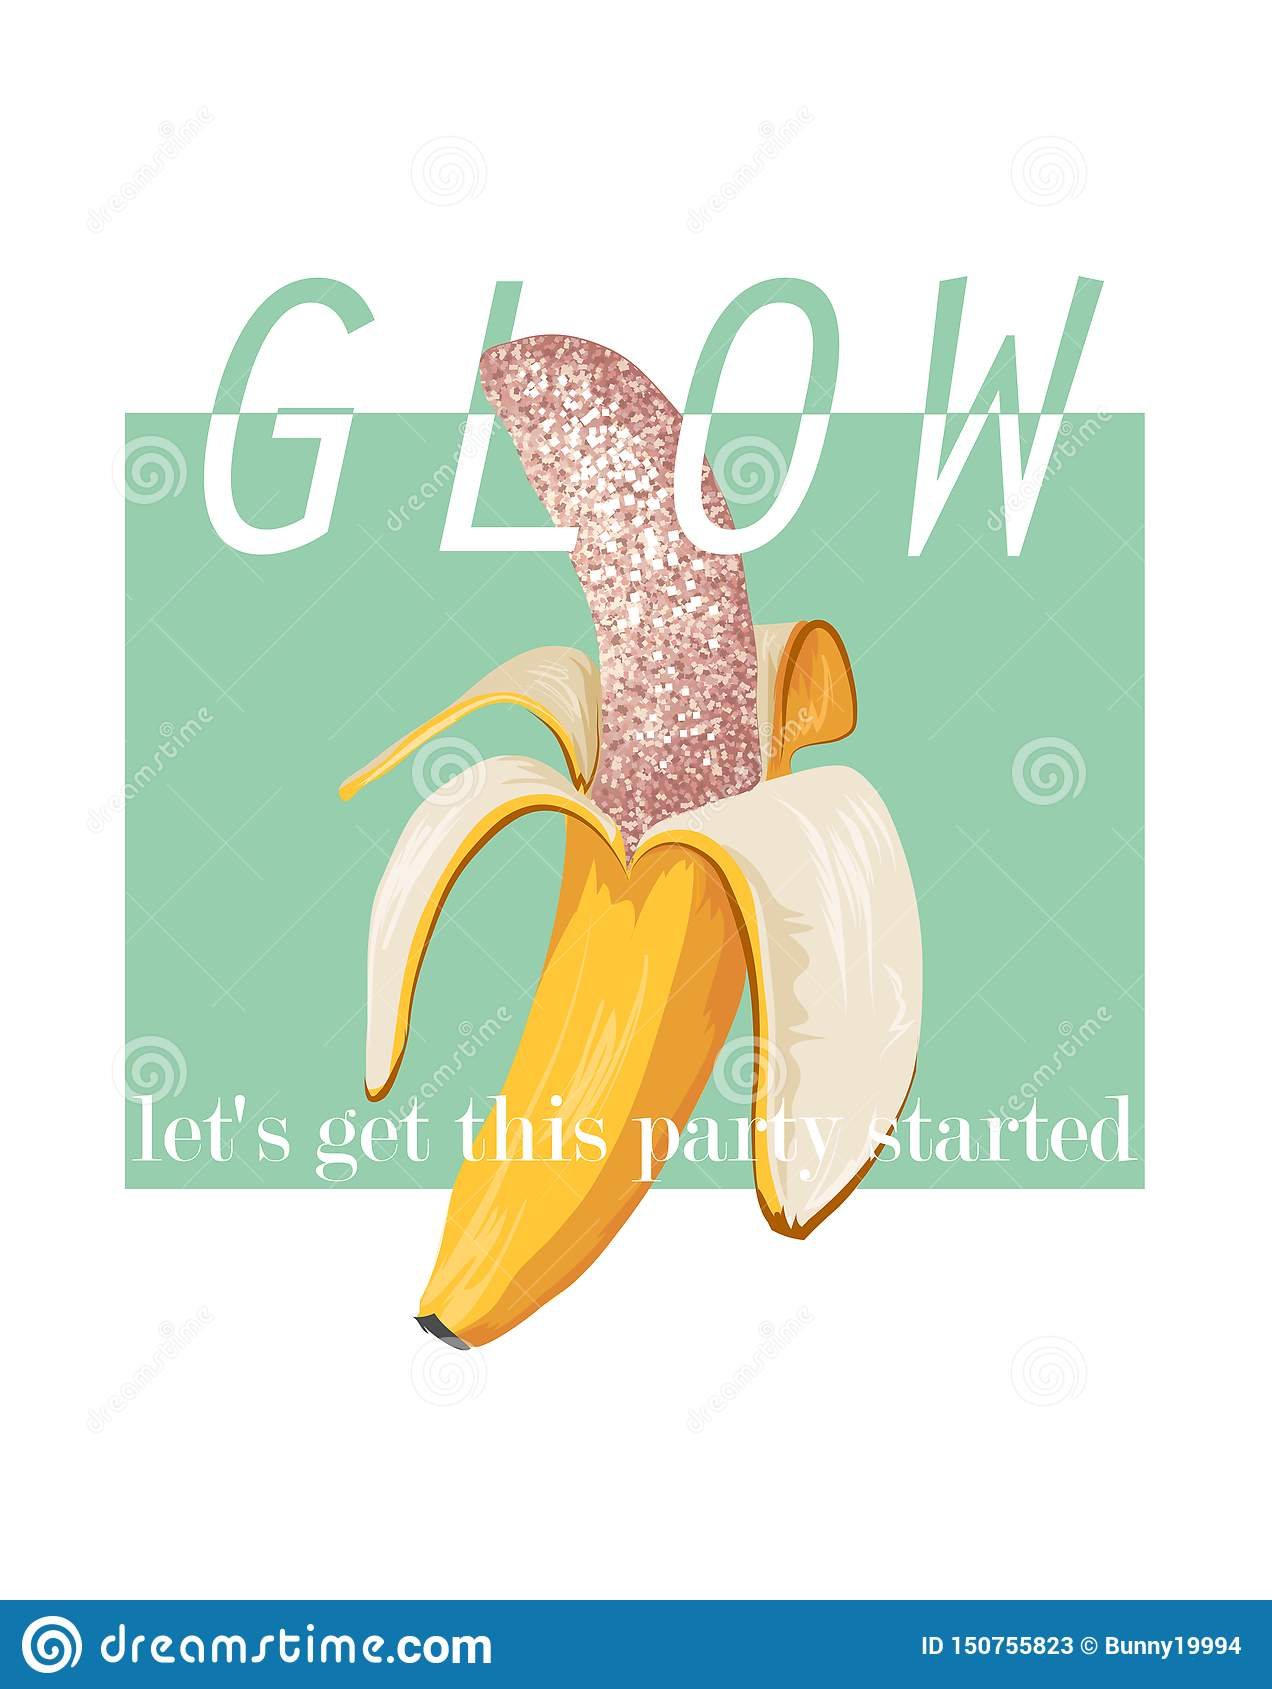 Glow slogan with banana illustration. Perfect for decor such as posters, wall art, tote bag, t-shirt print, sticker, post card.